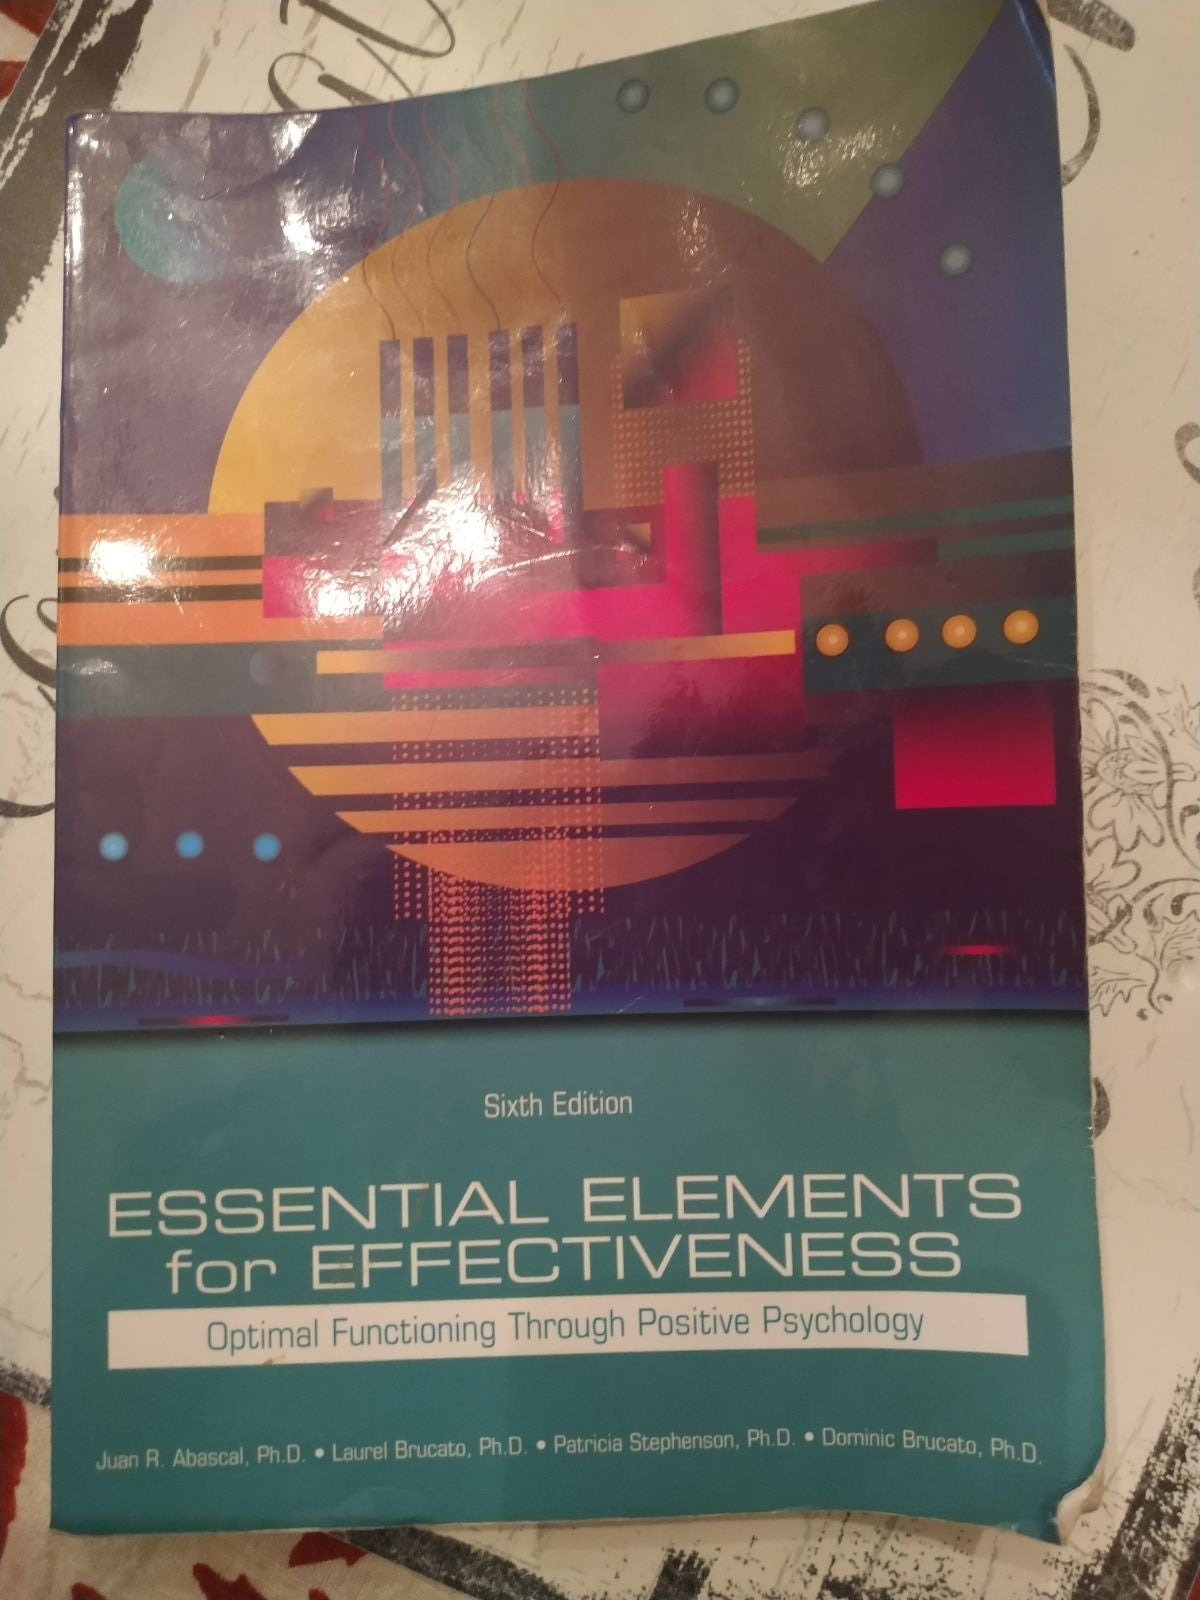 Essential Elements for Effectiveness (op